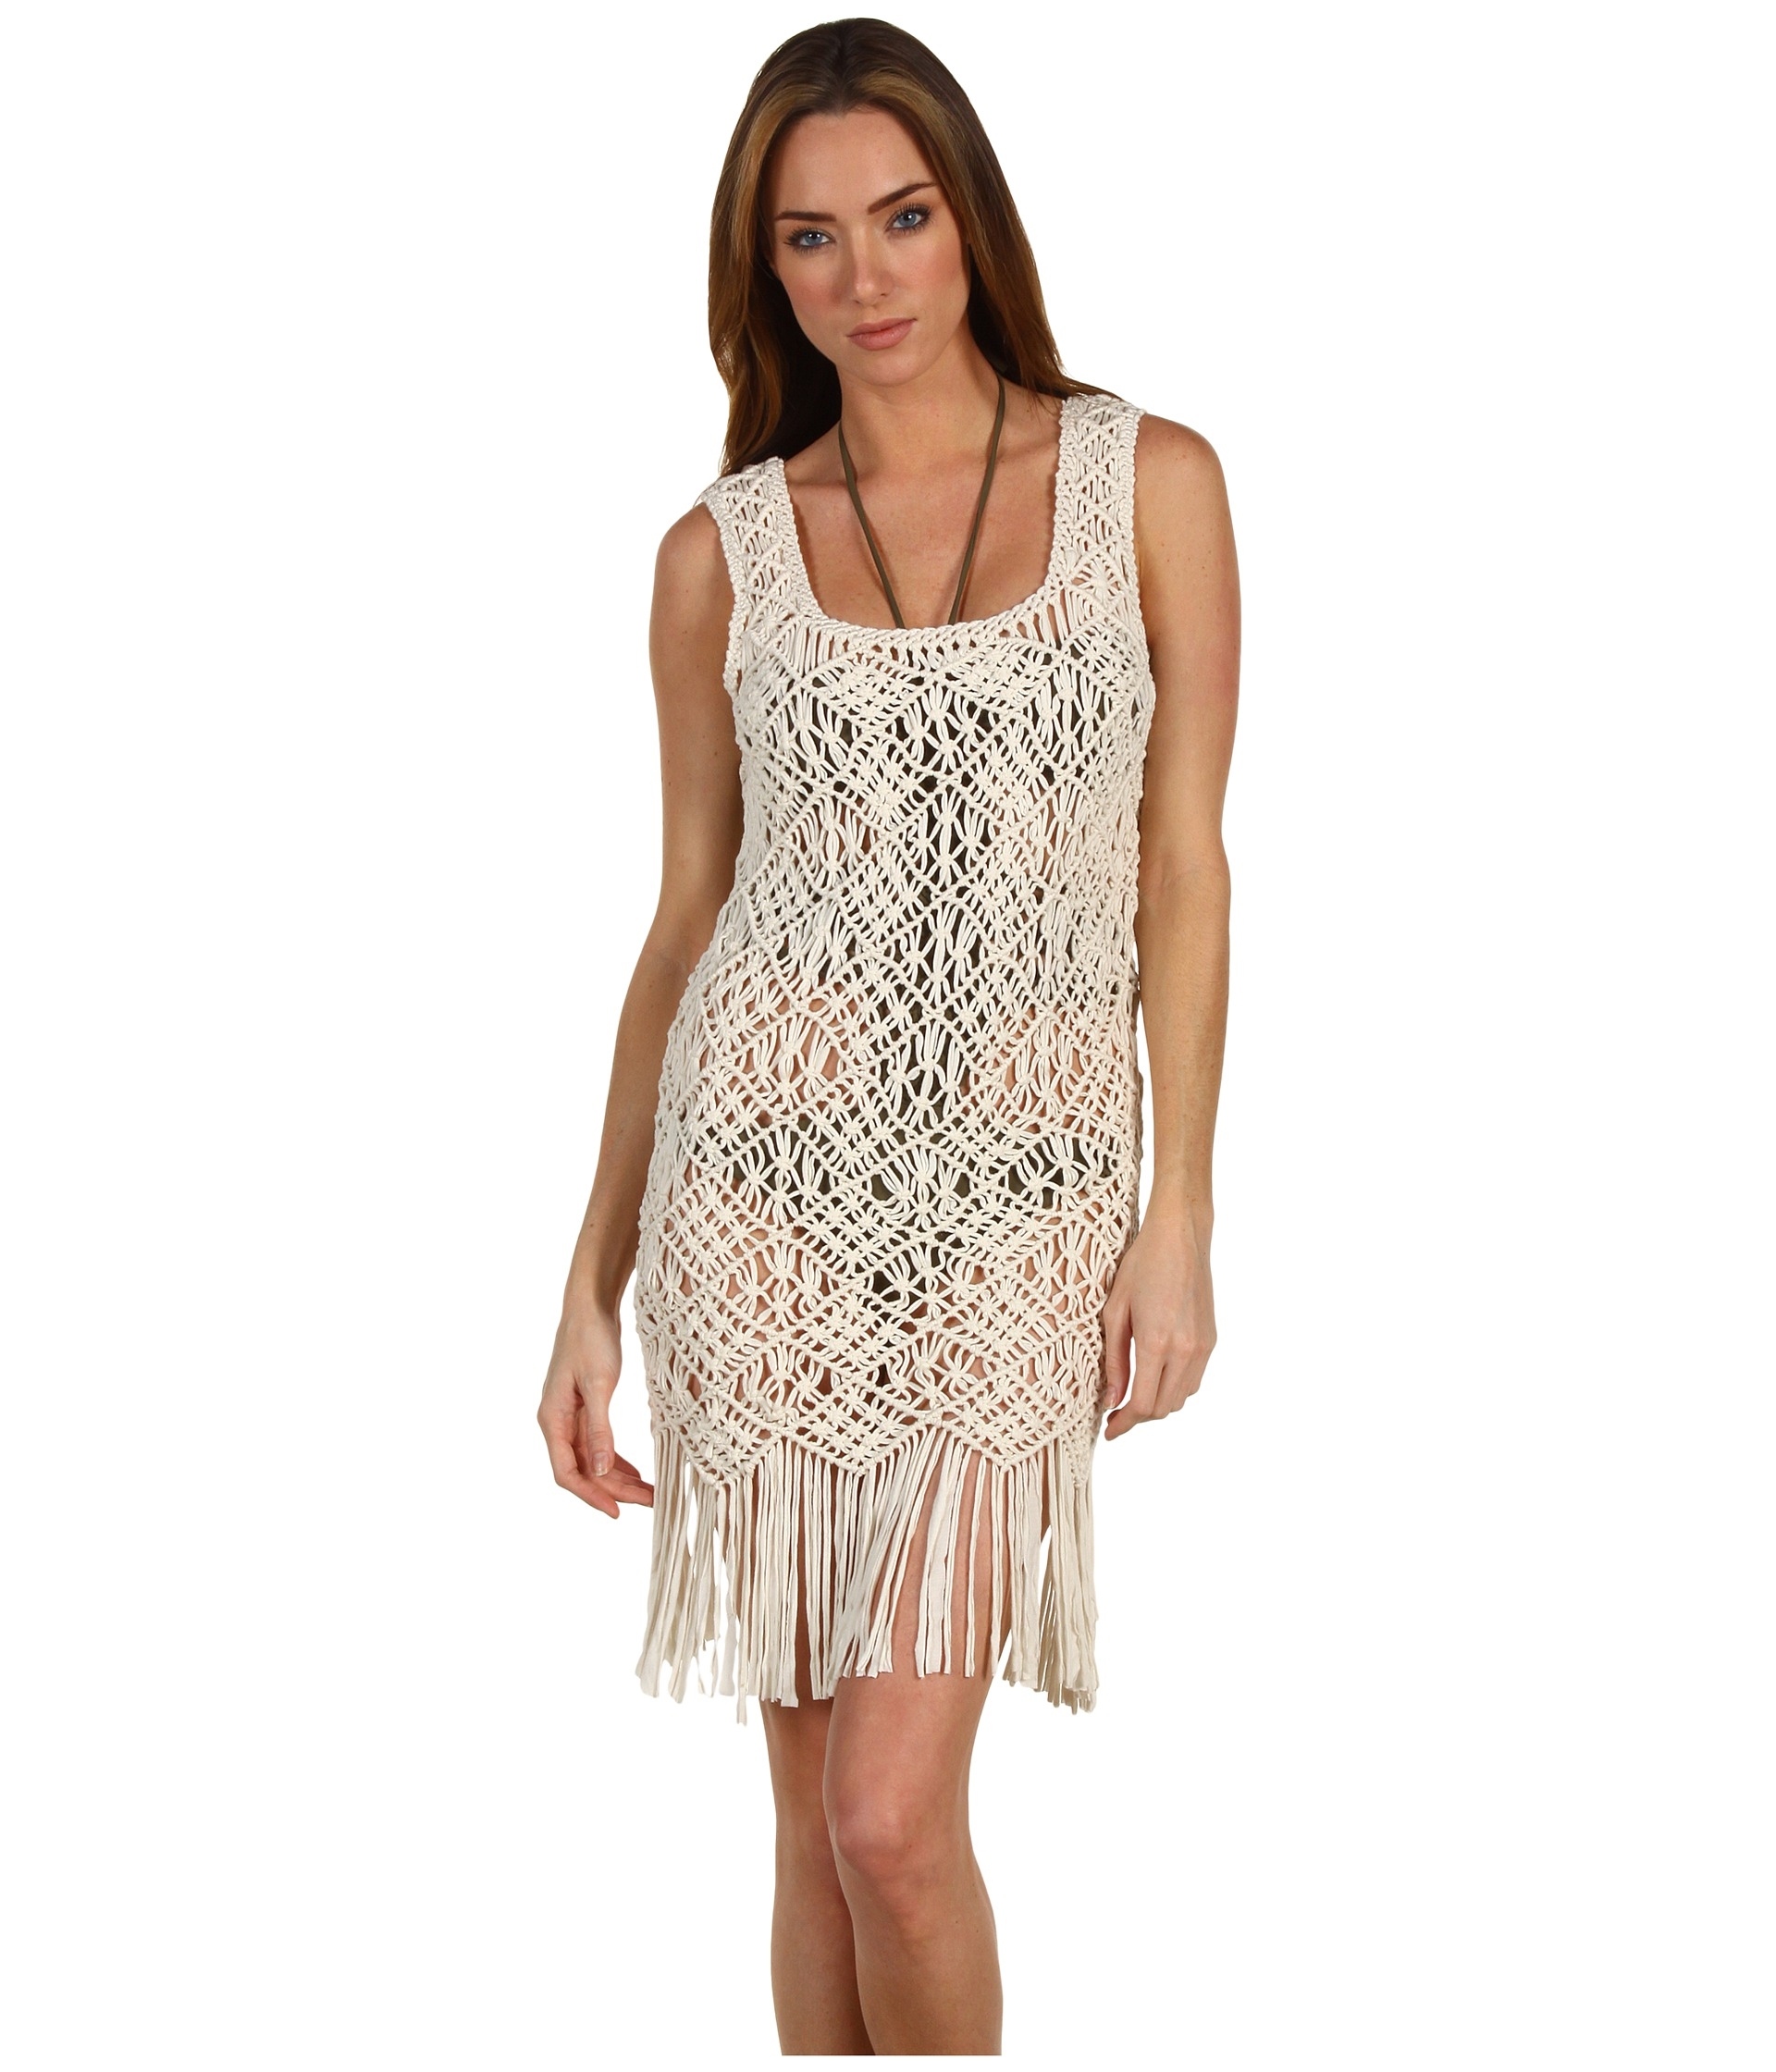 macrame dresses macrame dresses 2016 2017 fashion trends 2016 2017 6308